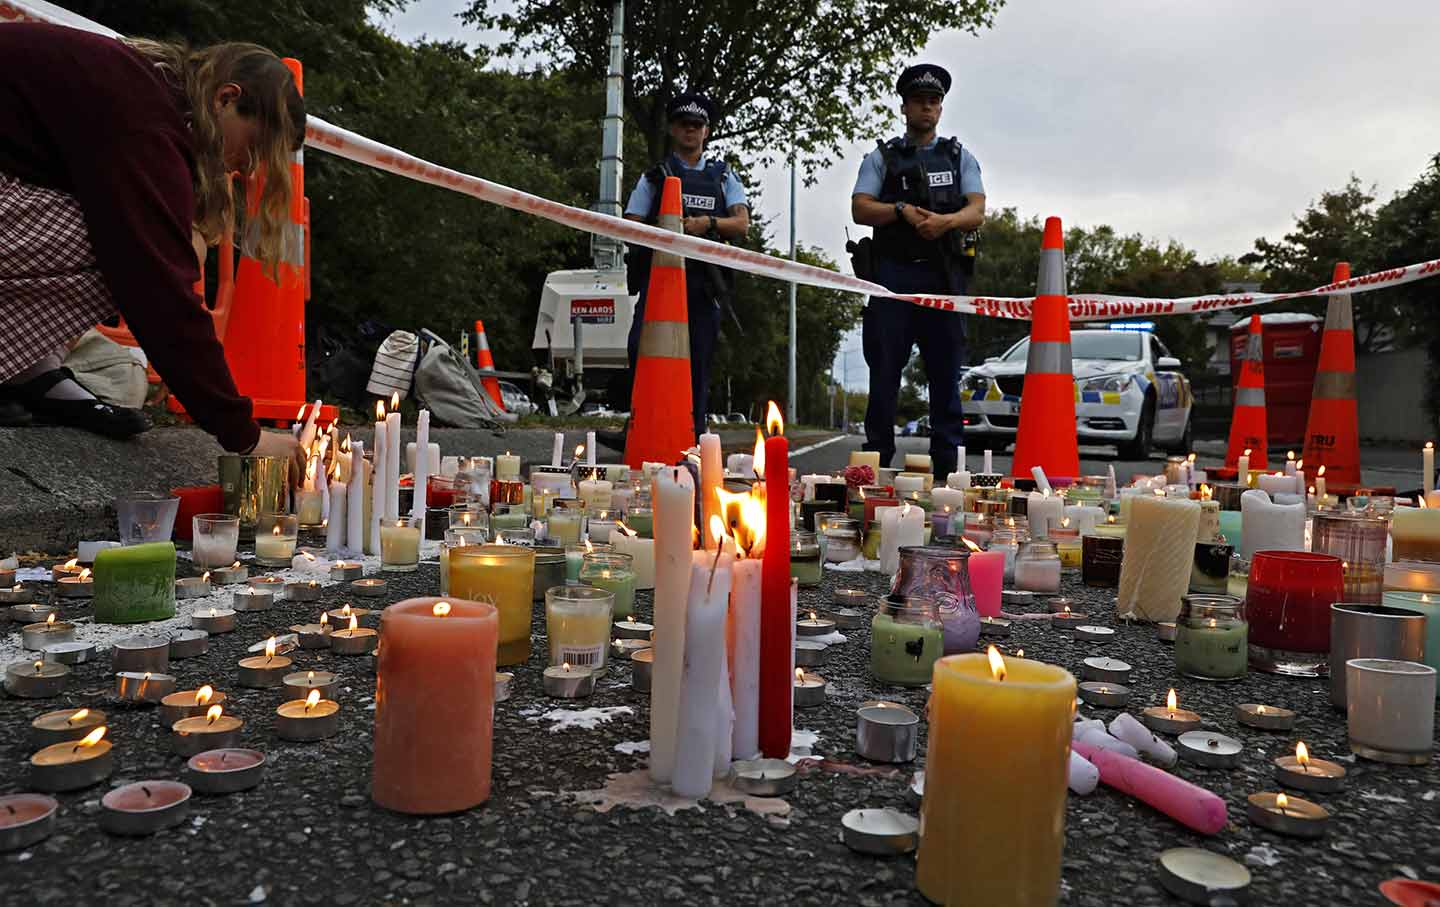 new-zealand-mosque-attack-ap-img